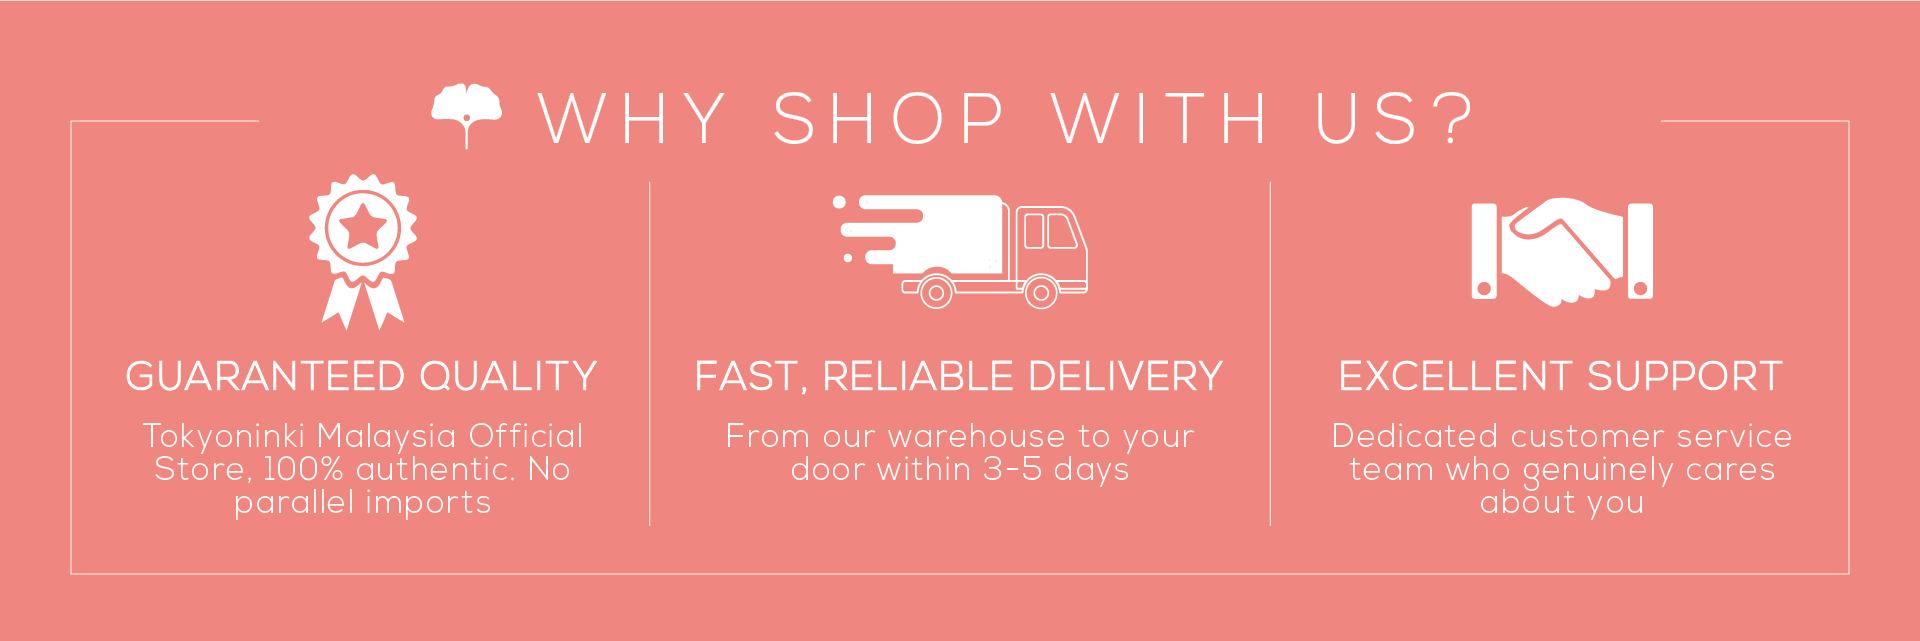 Why Shop With Us - Tokyoninki